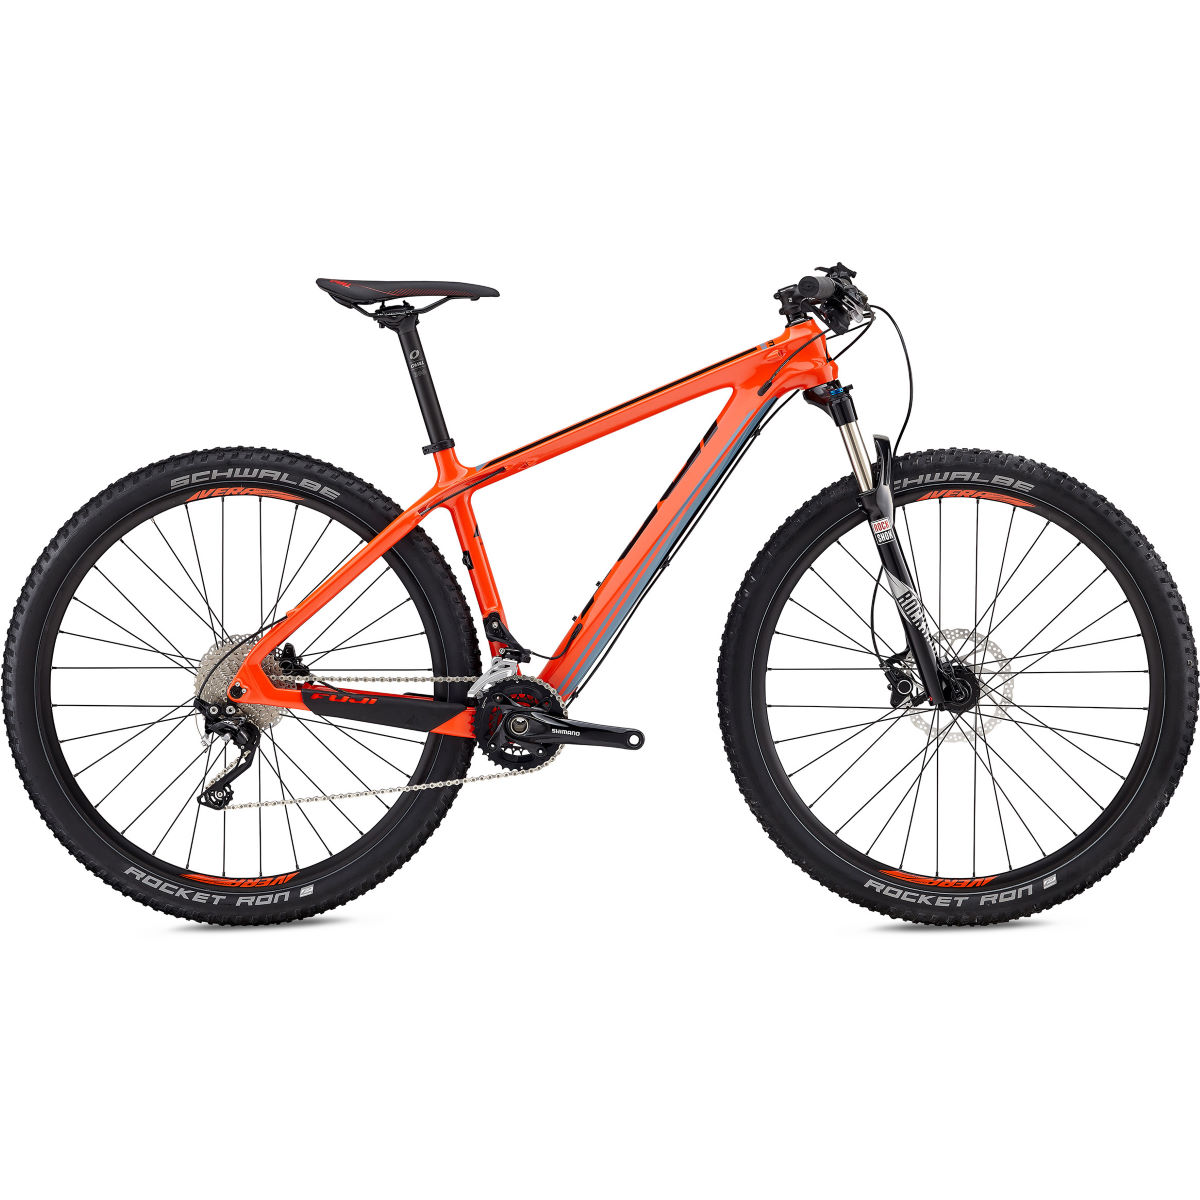 VTT Fuji SLM 29 2.7 (2018) - 21'' Stock Bike Orange VTT semi-rigides